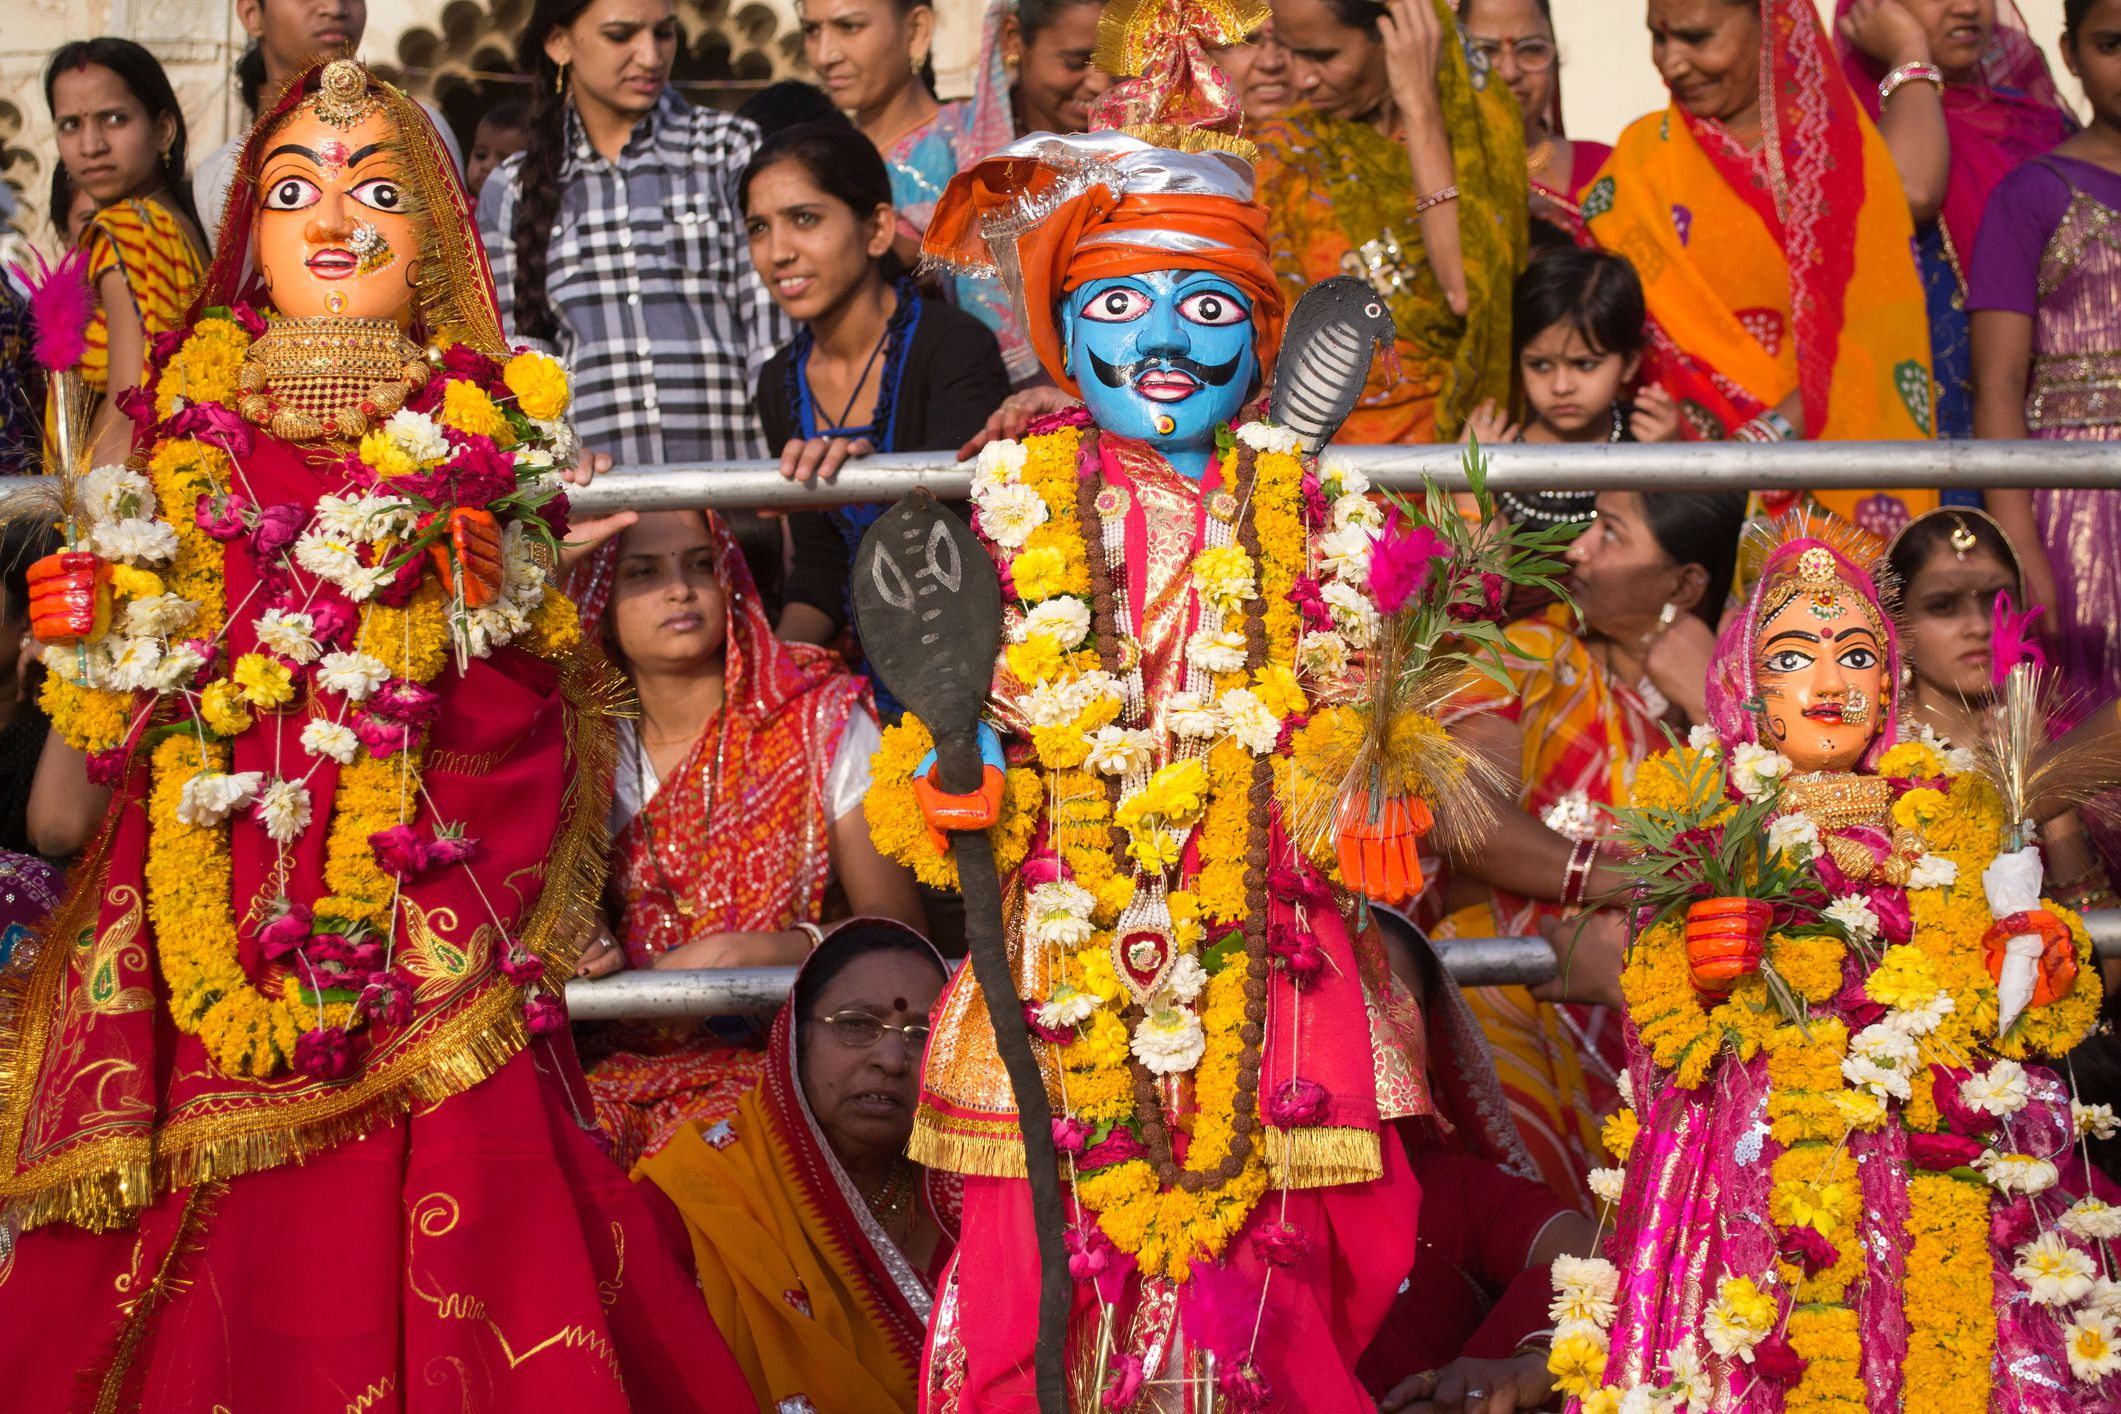 April 2019 India Festivals and Events Guide